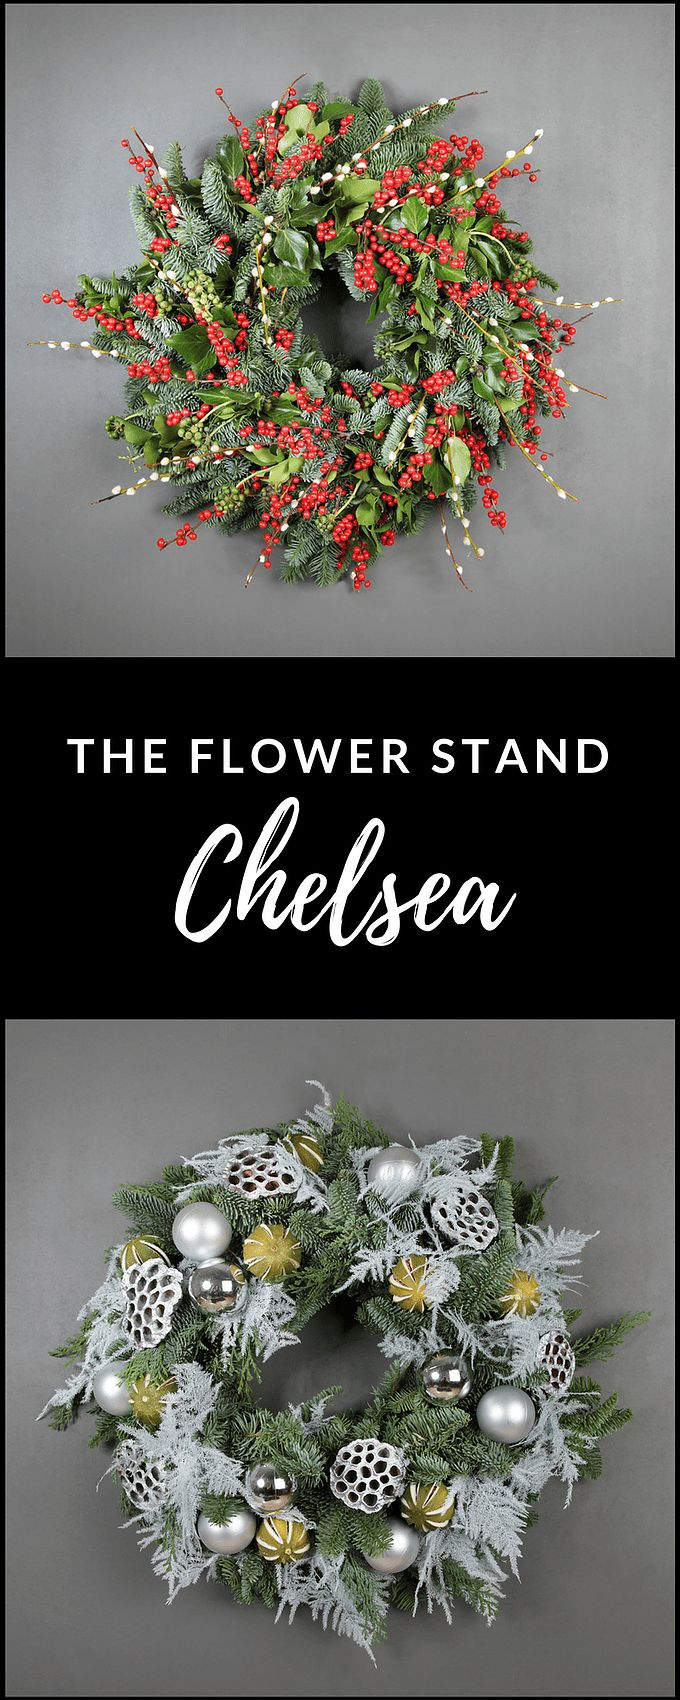 The UK's most beautiful Christmas Wreaths | Seasons in Colour | #christmaswreath #christmasdecor #christmasinspo #christmasstyling